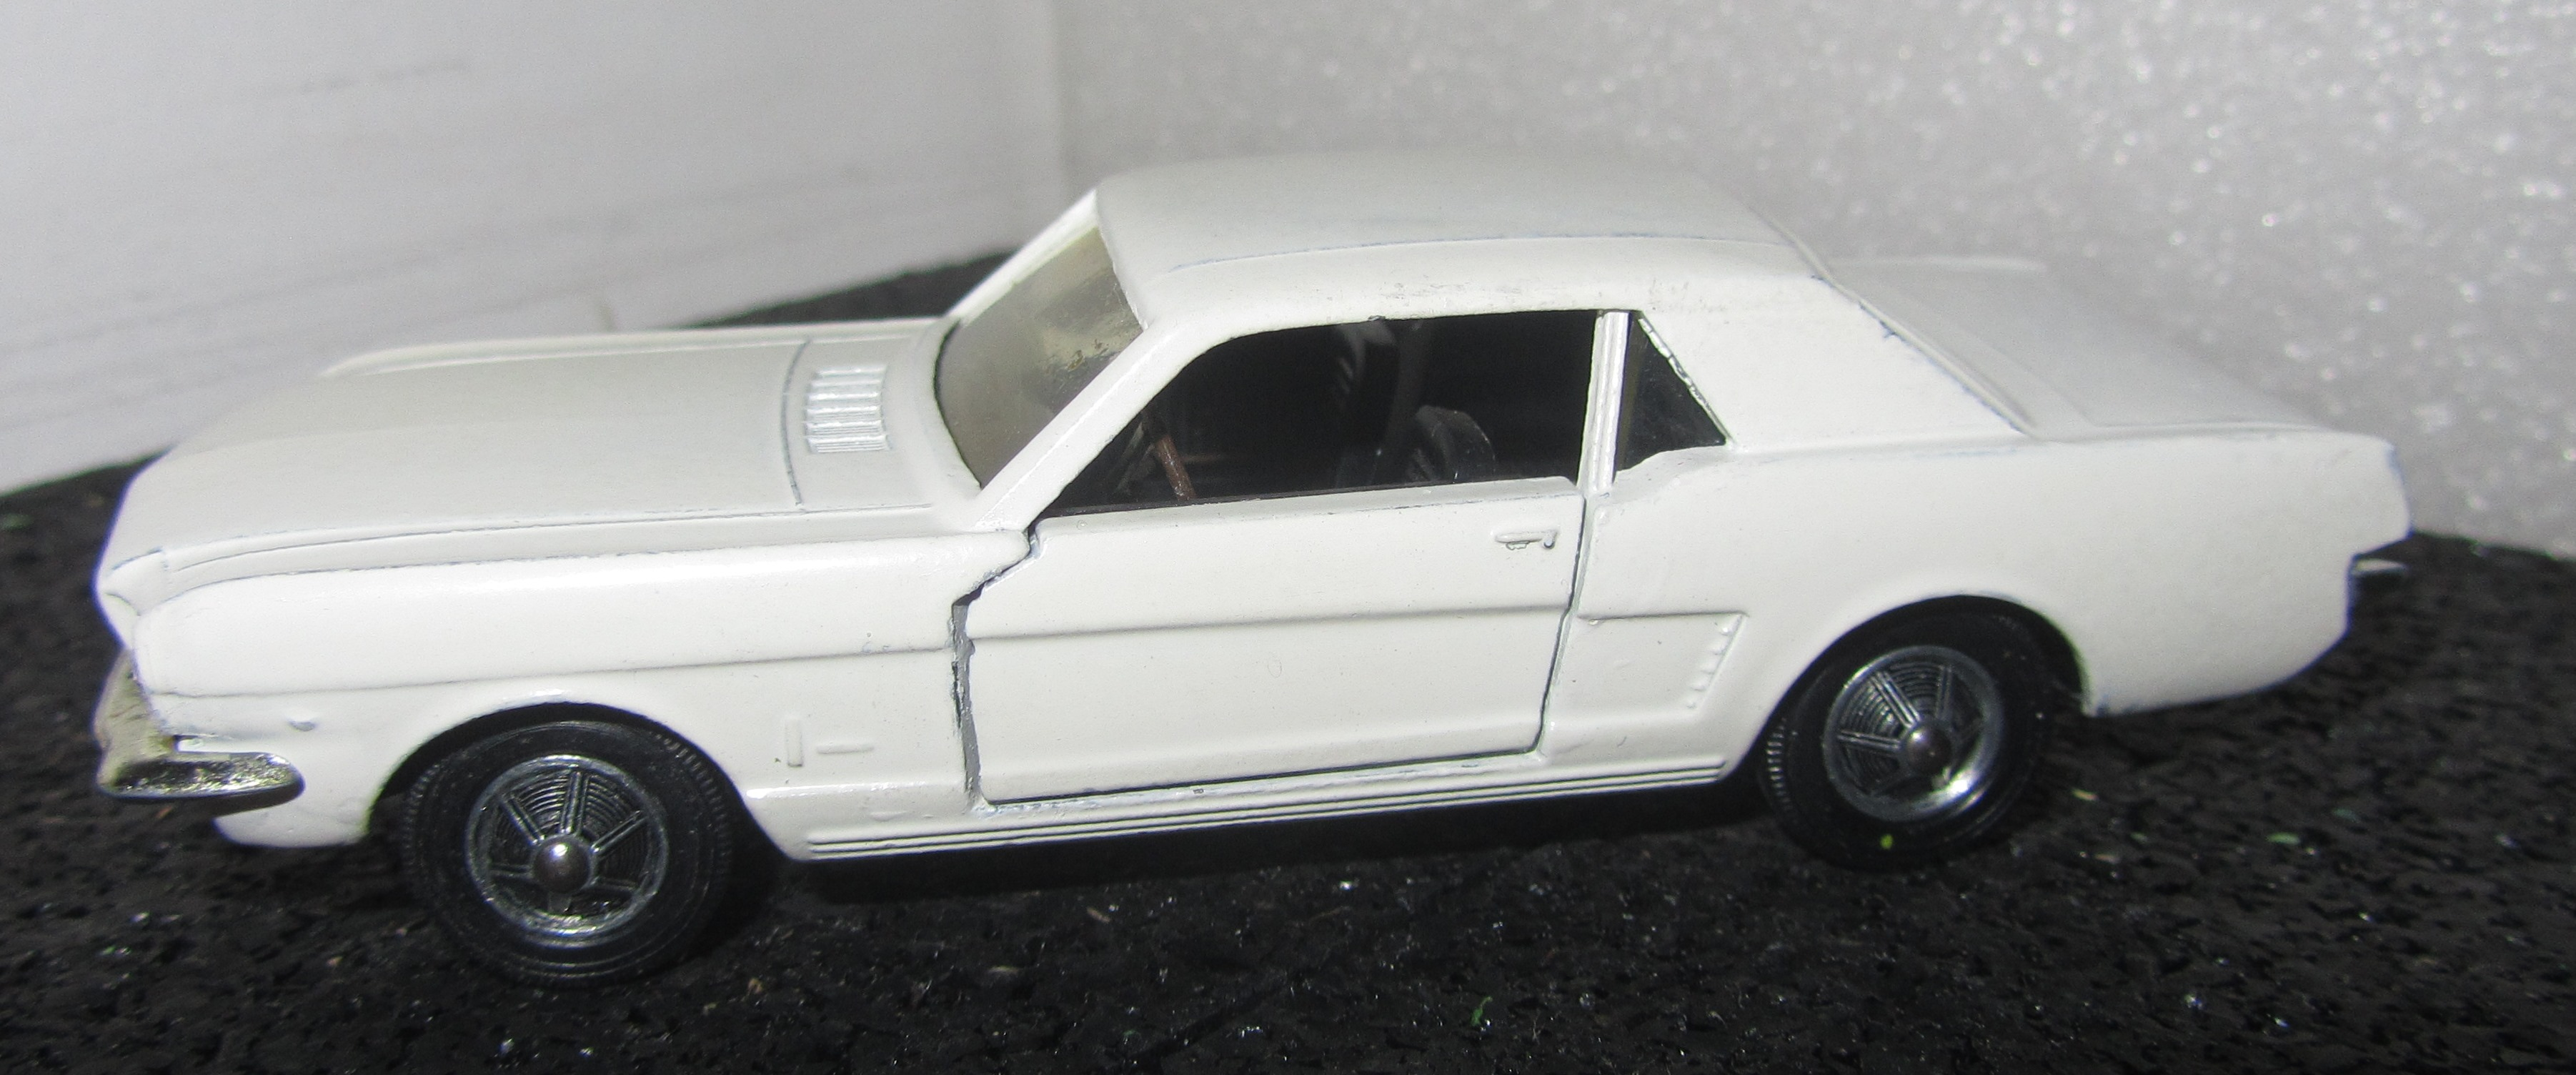 Solido n° 147 bis - Ford Mustang 181218120233119424